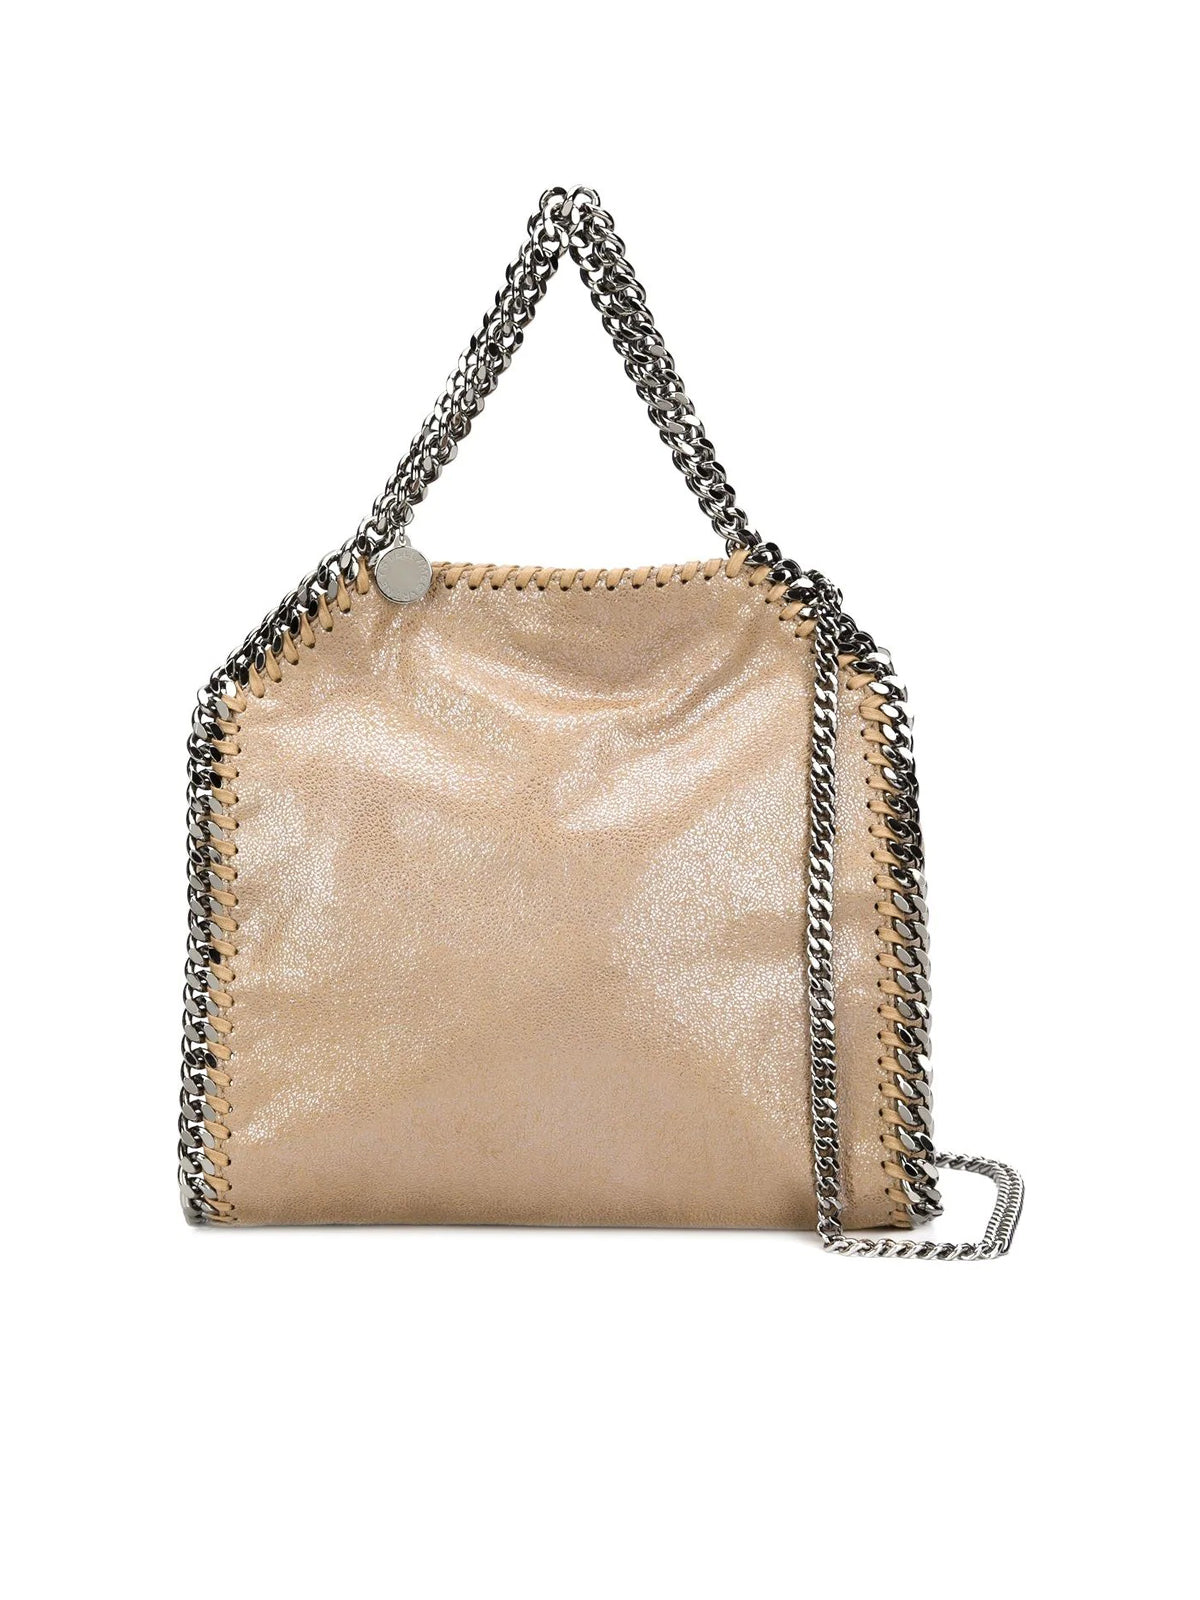 MINI TOTE FALABELLA 3 CHAIN METALLIC ECO-LEATHER